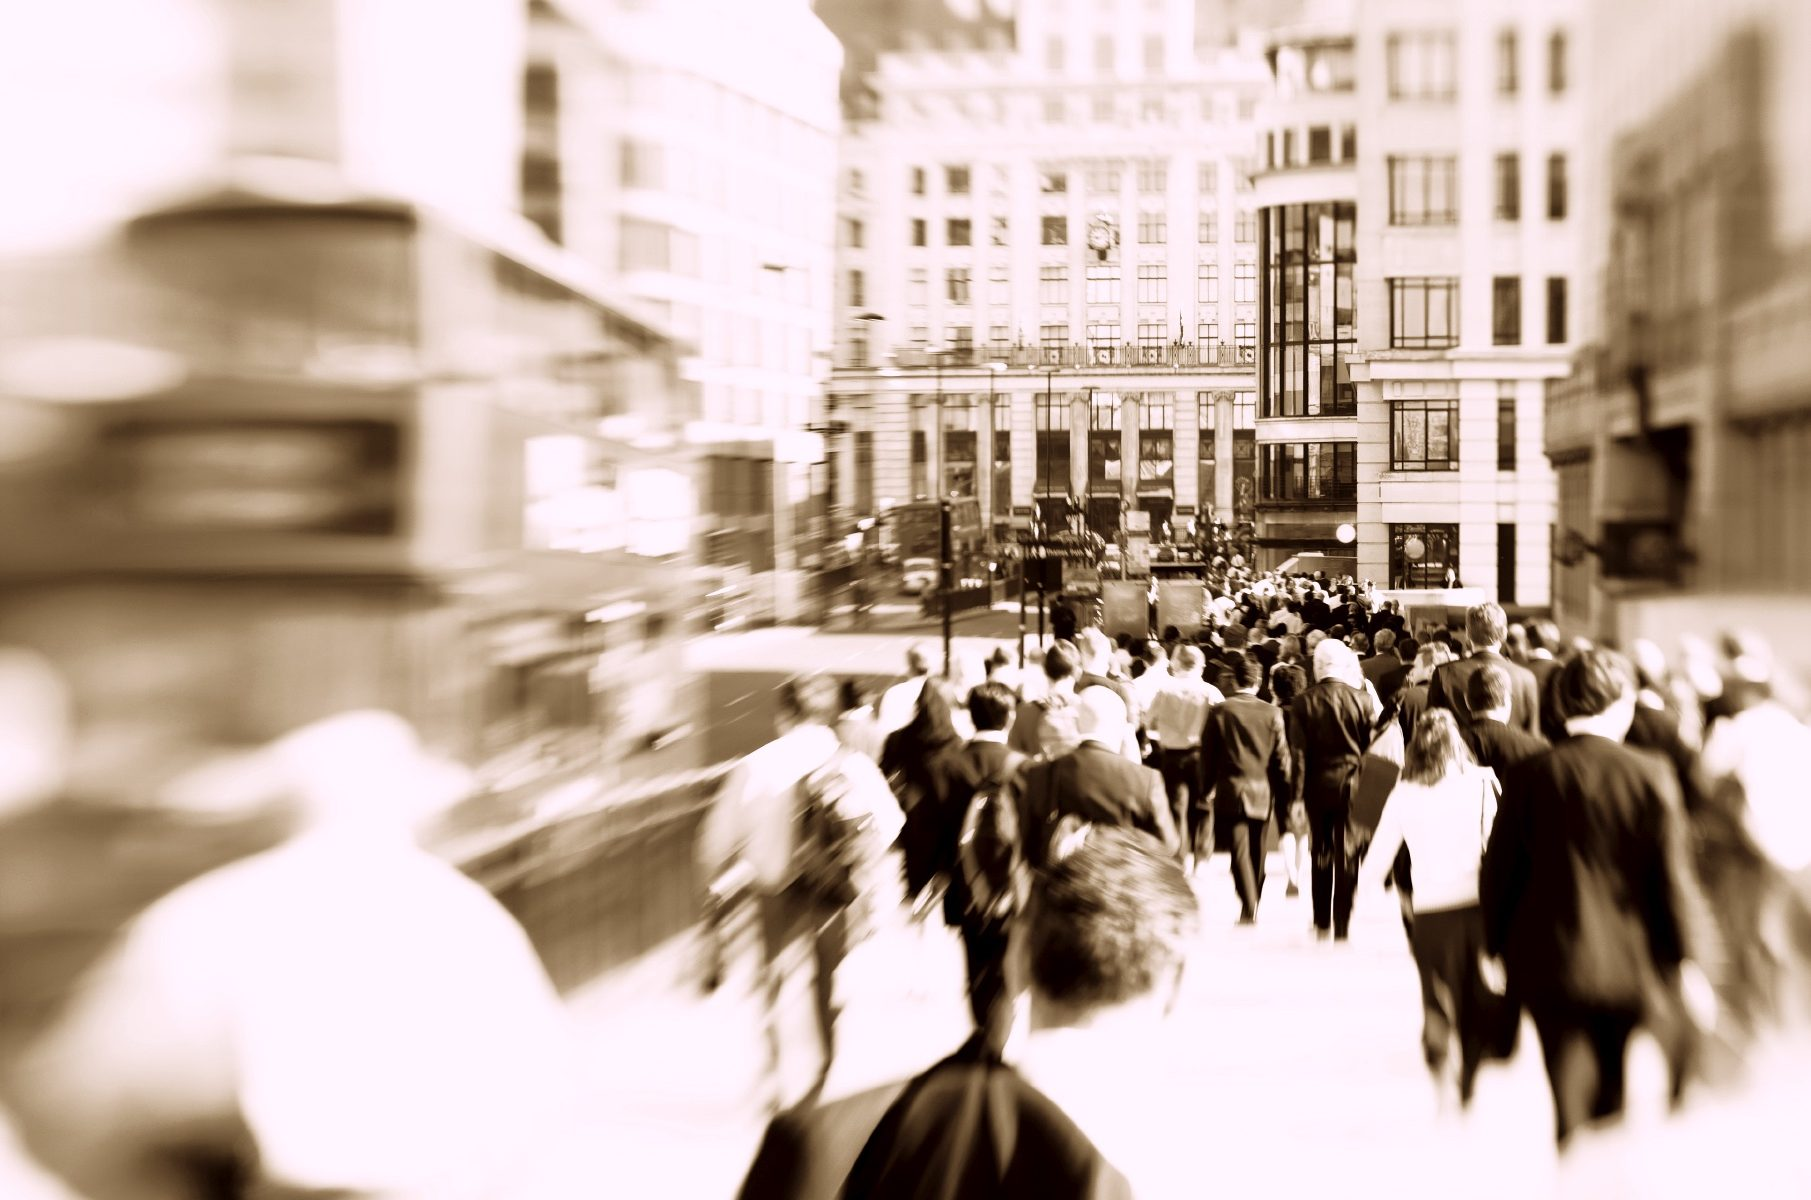 Blurred photograph of crowds walking through London